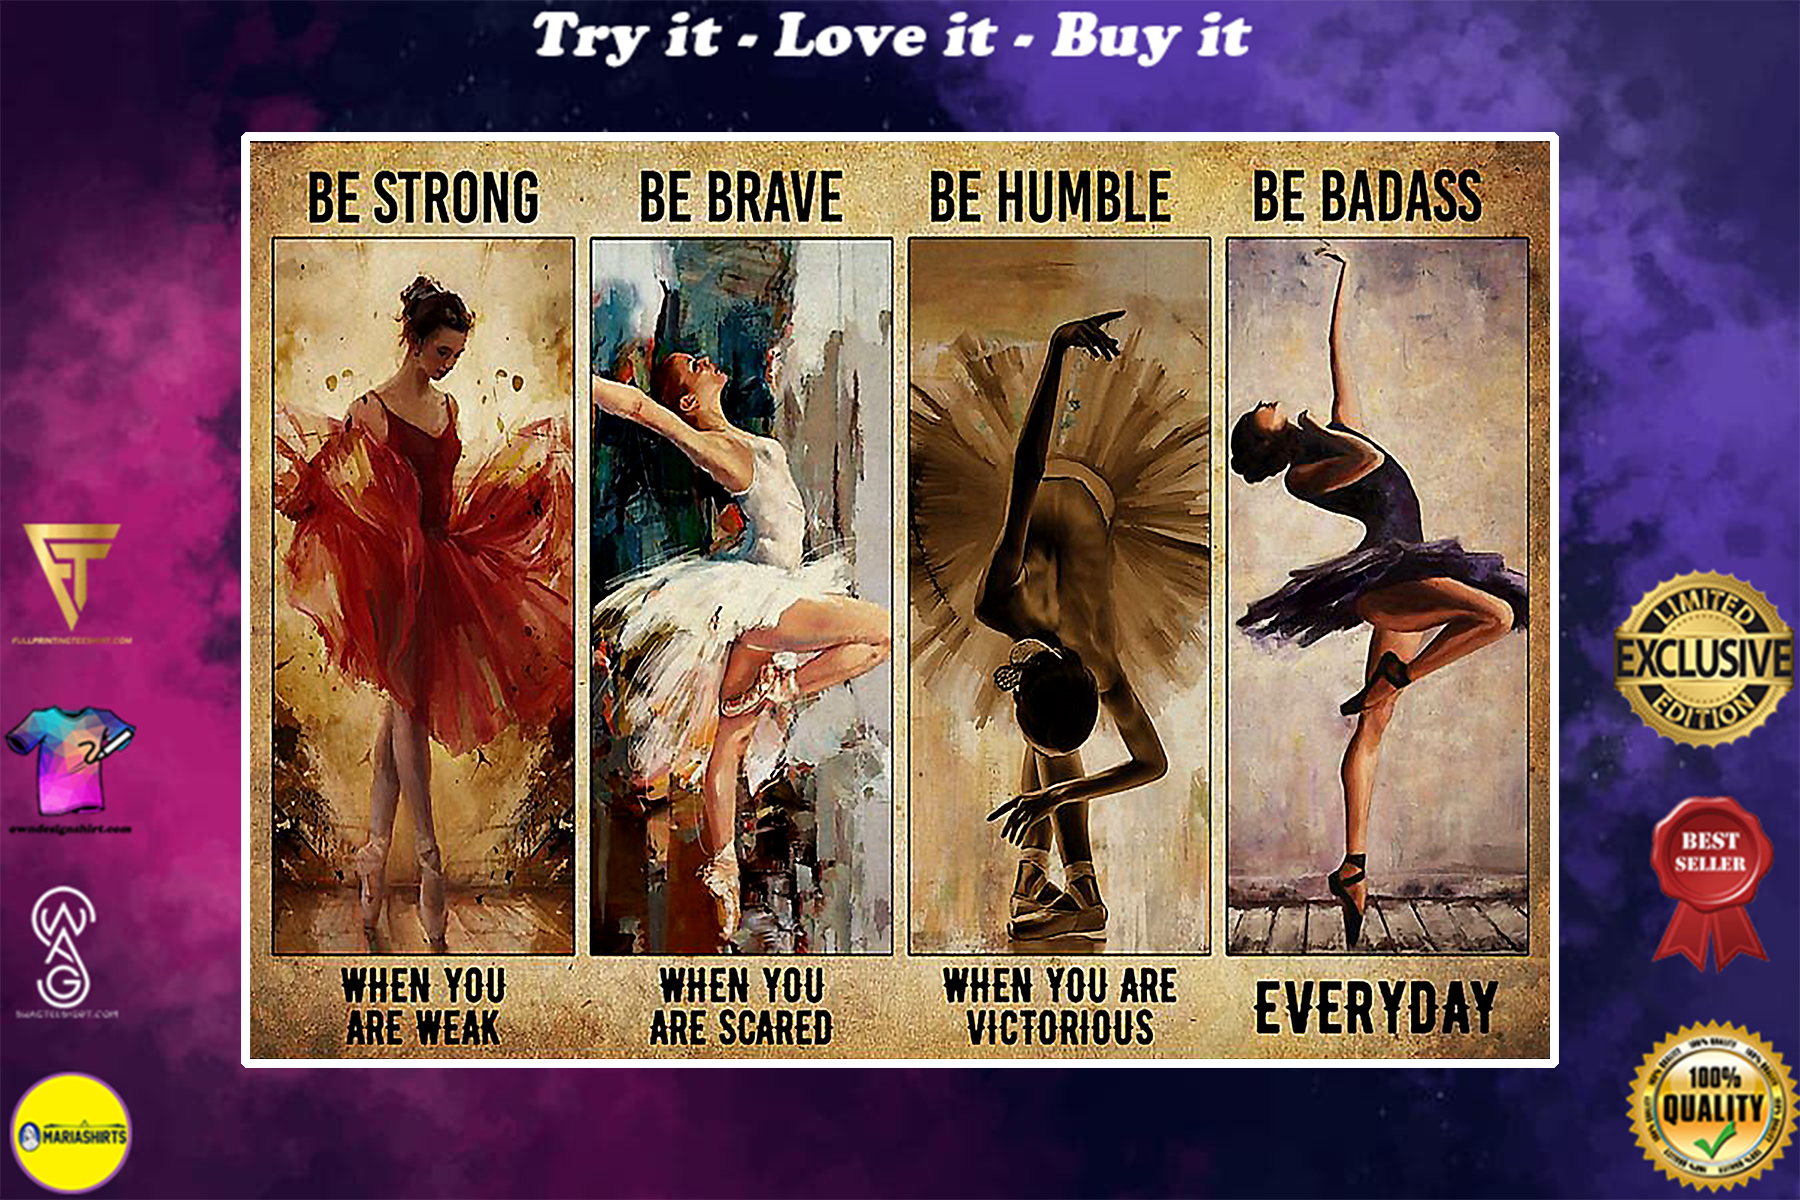 vintage ballet girl be strong when you are weak be brave when you are scared poster